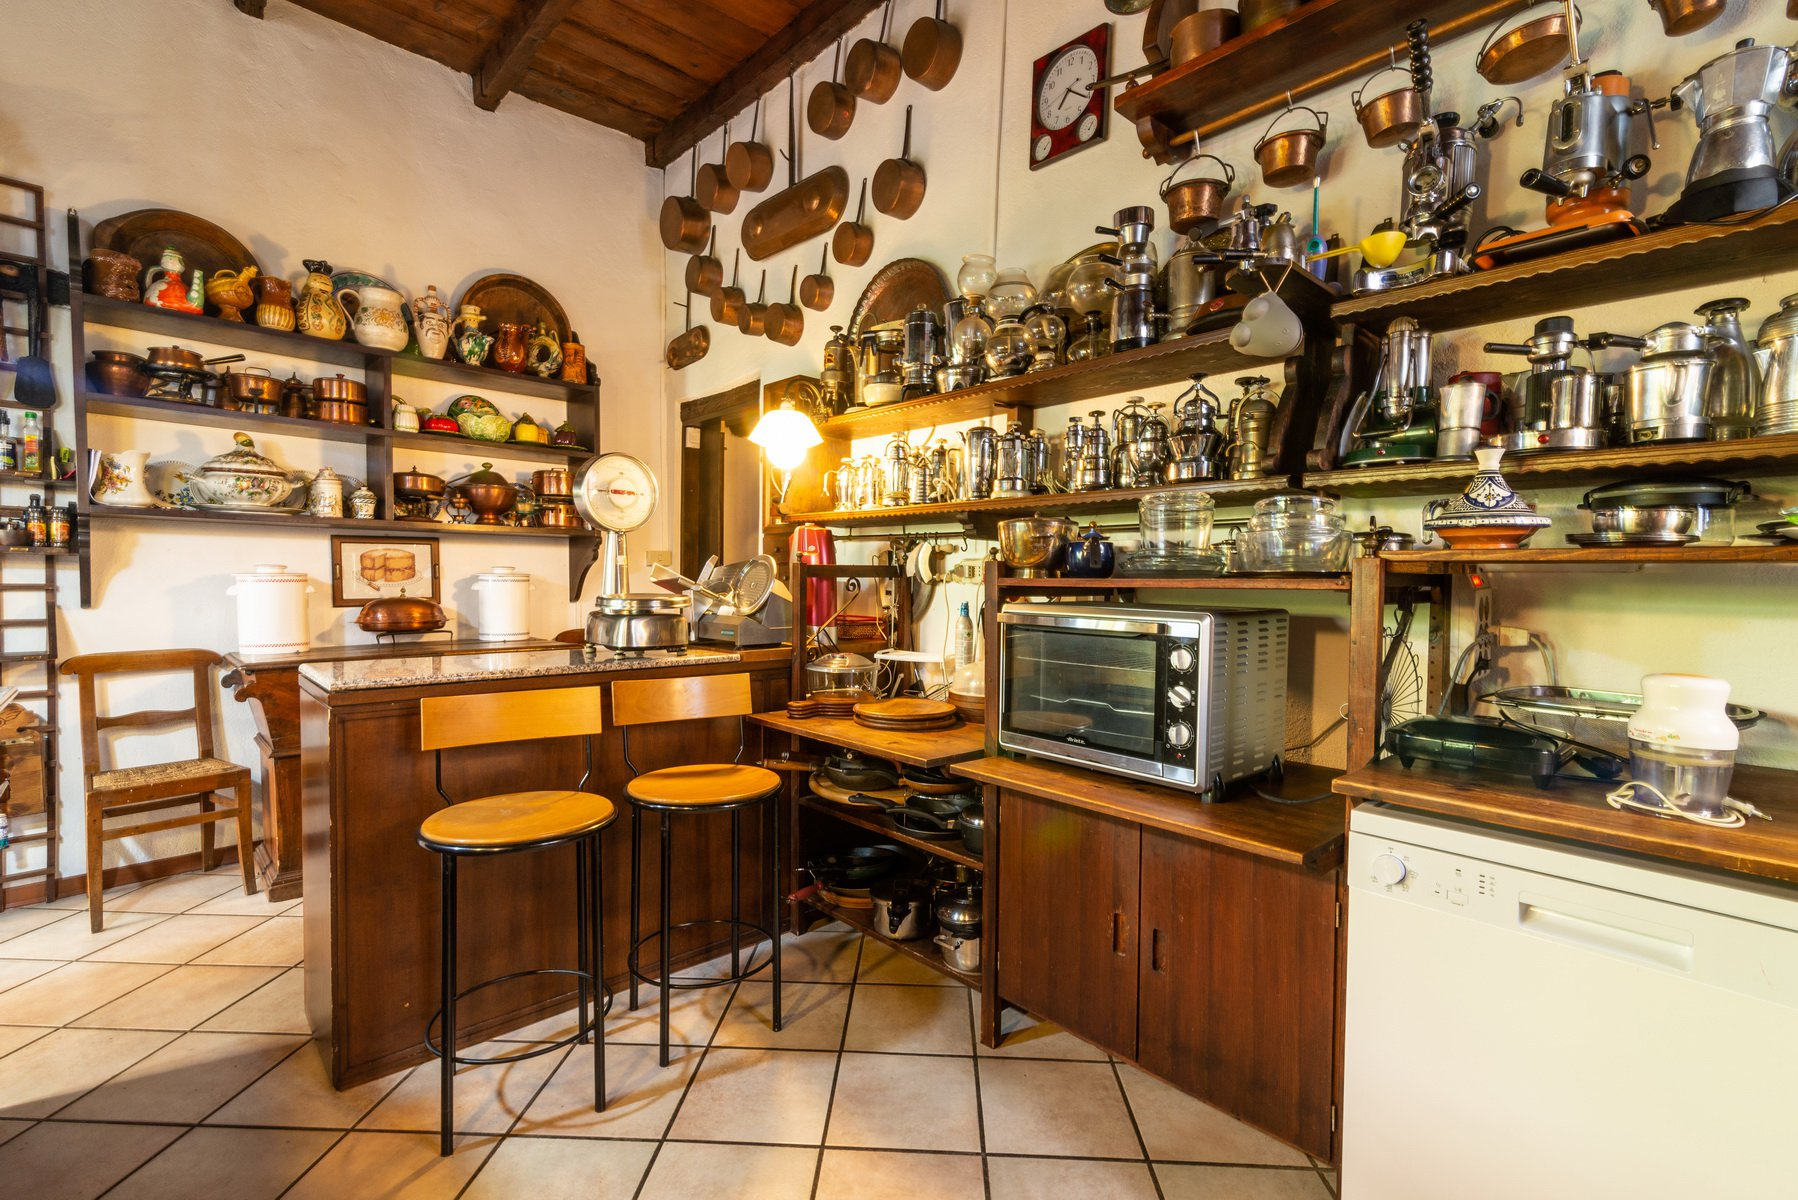 Historic house for sale in Lesa- large kitchen